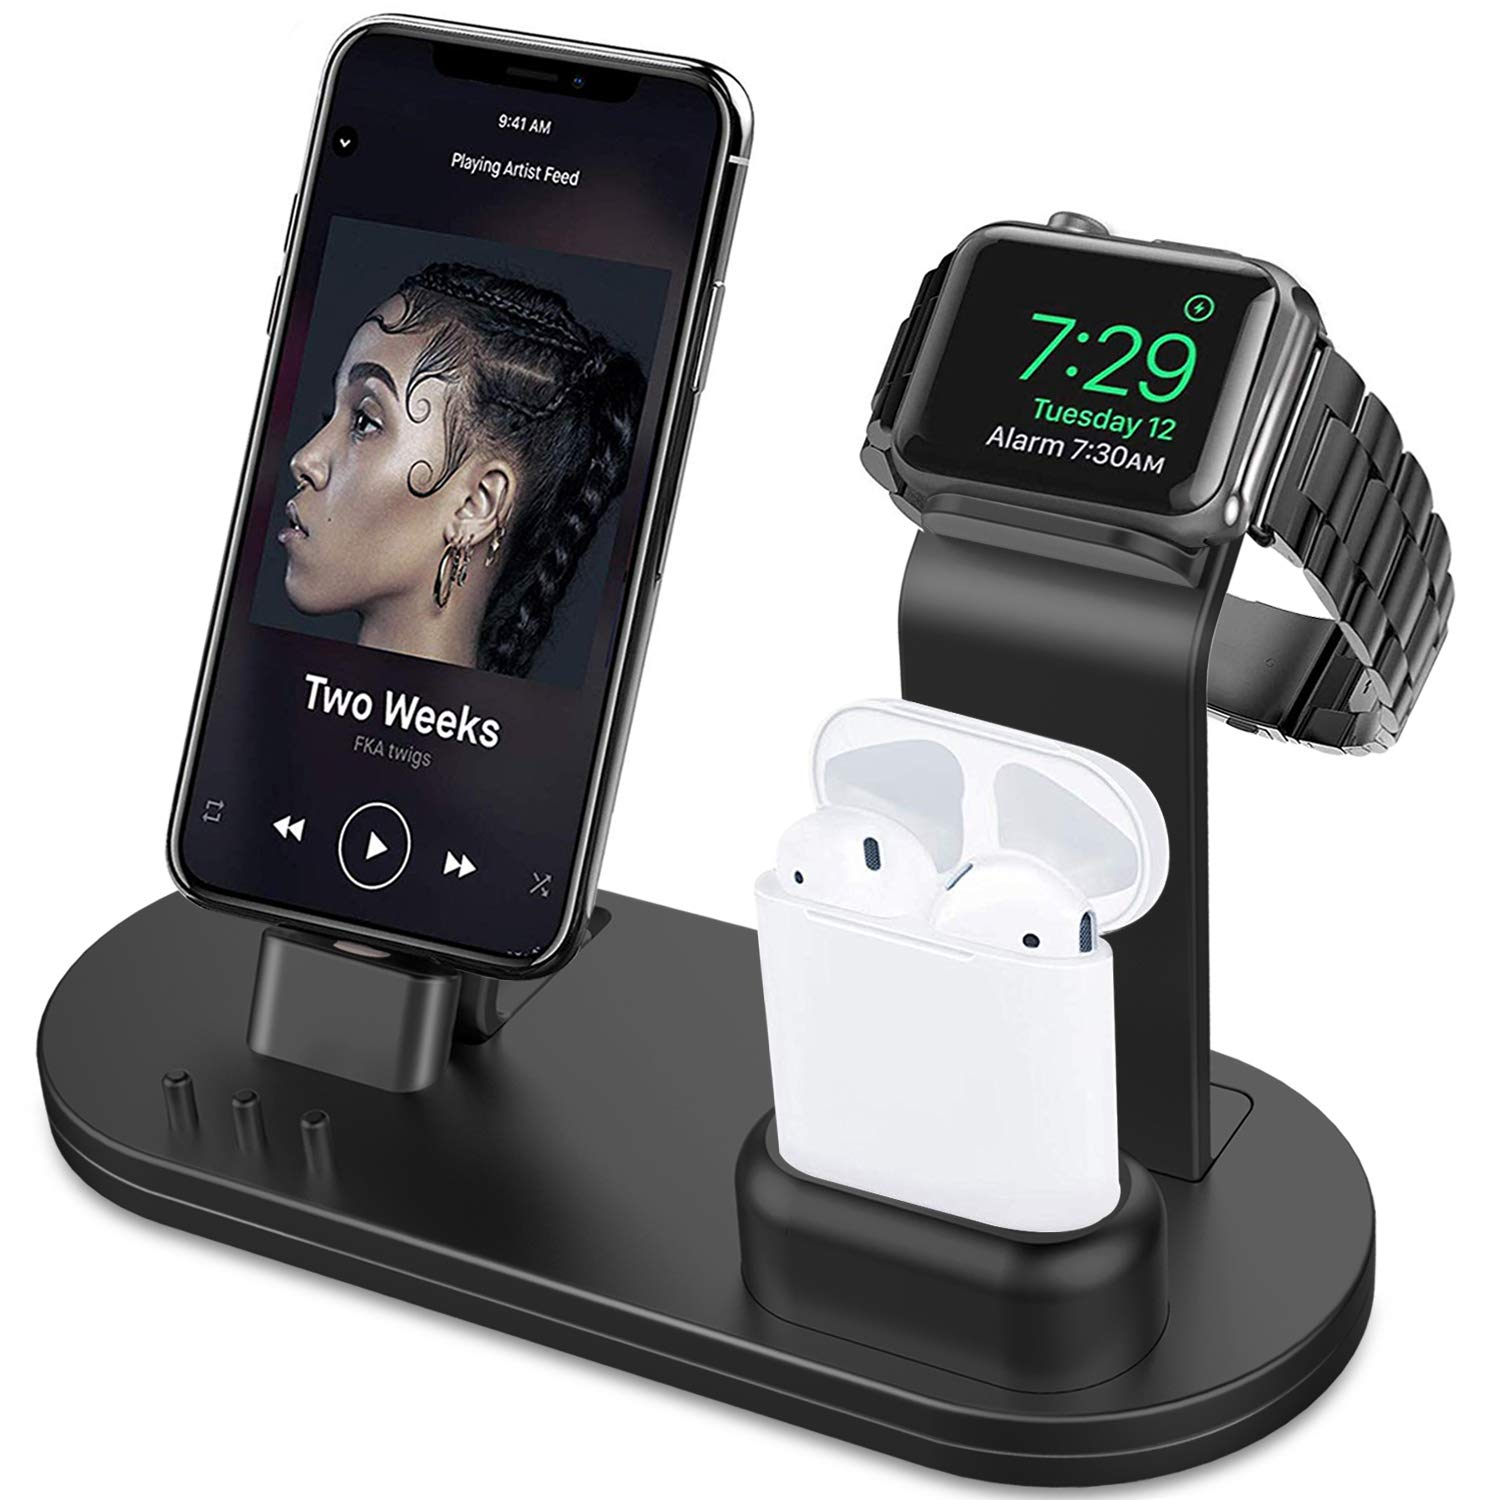 OLEBR 3 in 1 Charging Stand Compatible with iWatch Series 5/4/3/2/1, AirPods and iPhone Xs/X Max/XR/X/8/8Plus/7/7 Plus /6S /6S Plus/9.7 inches iPad (Original Charger & Cables Required) -Black by OLEBR